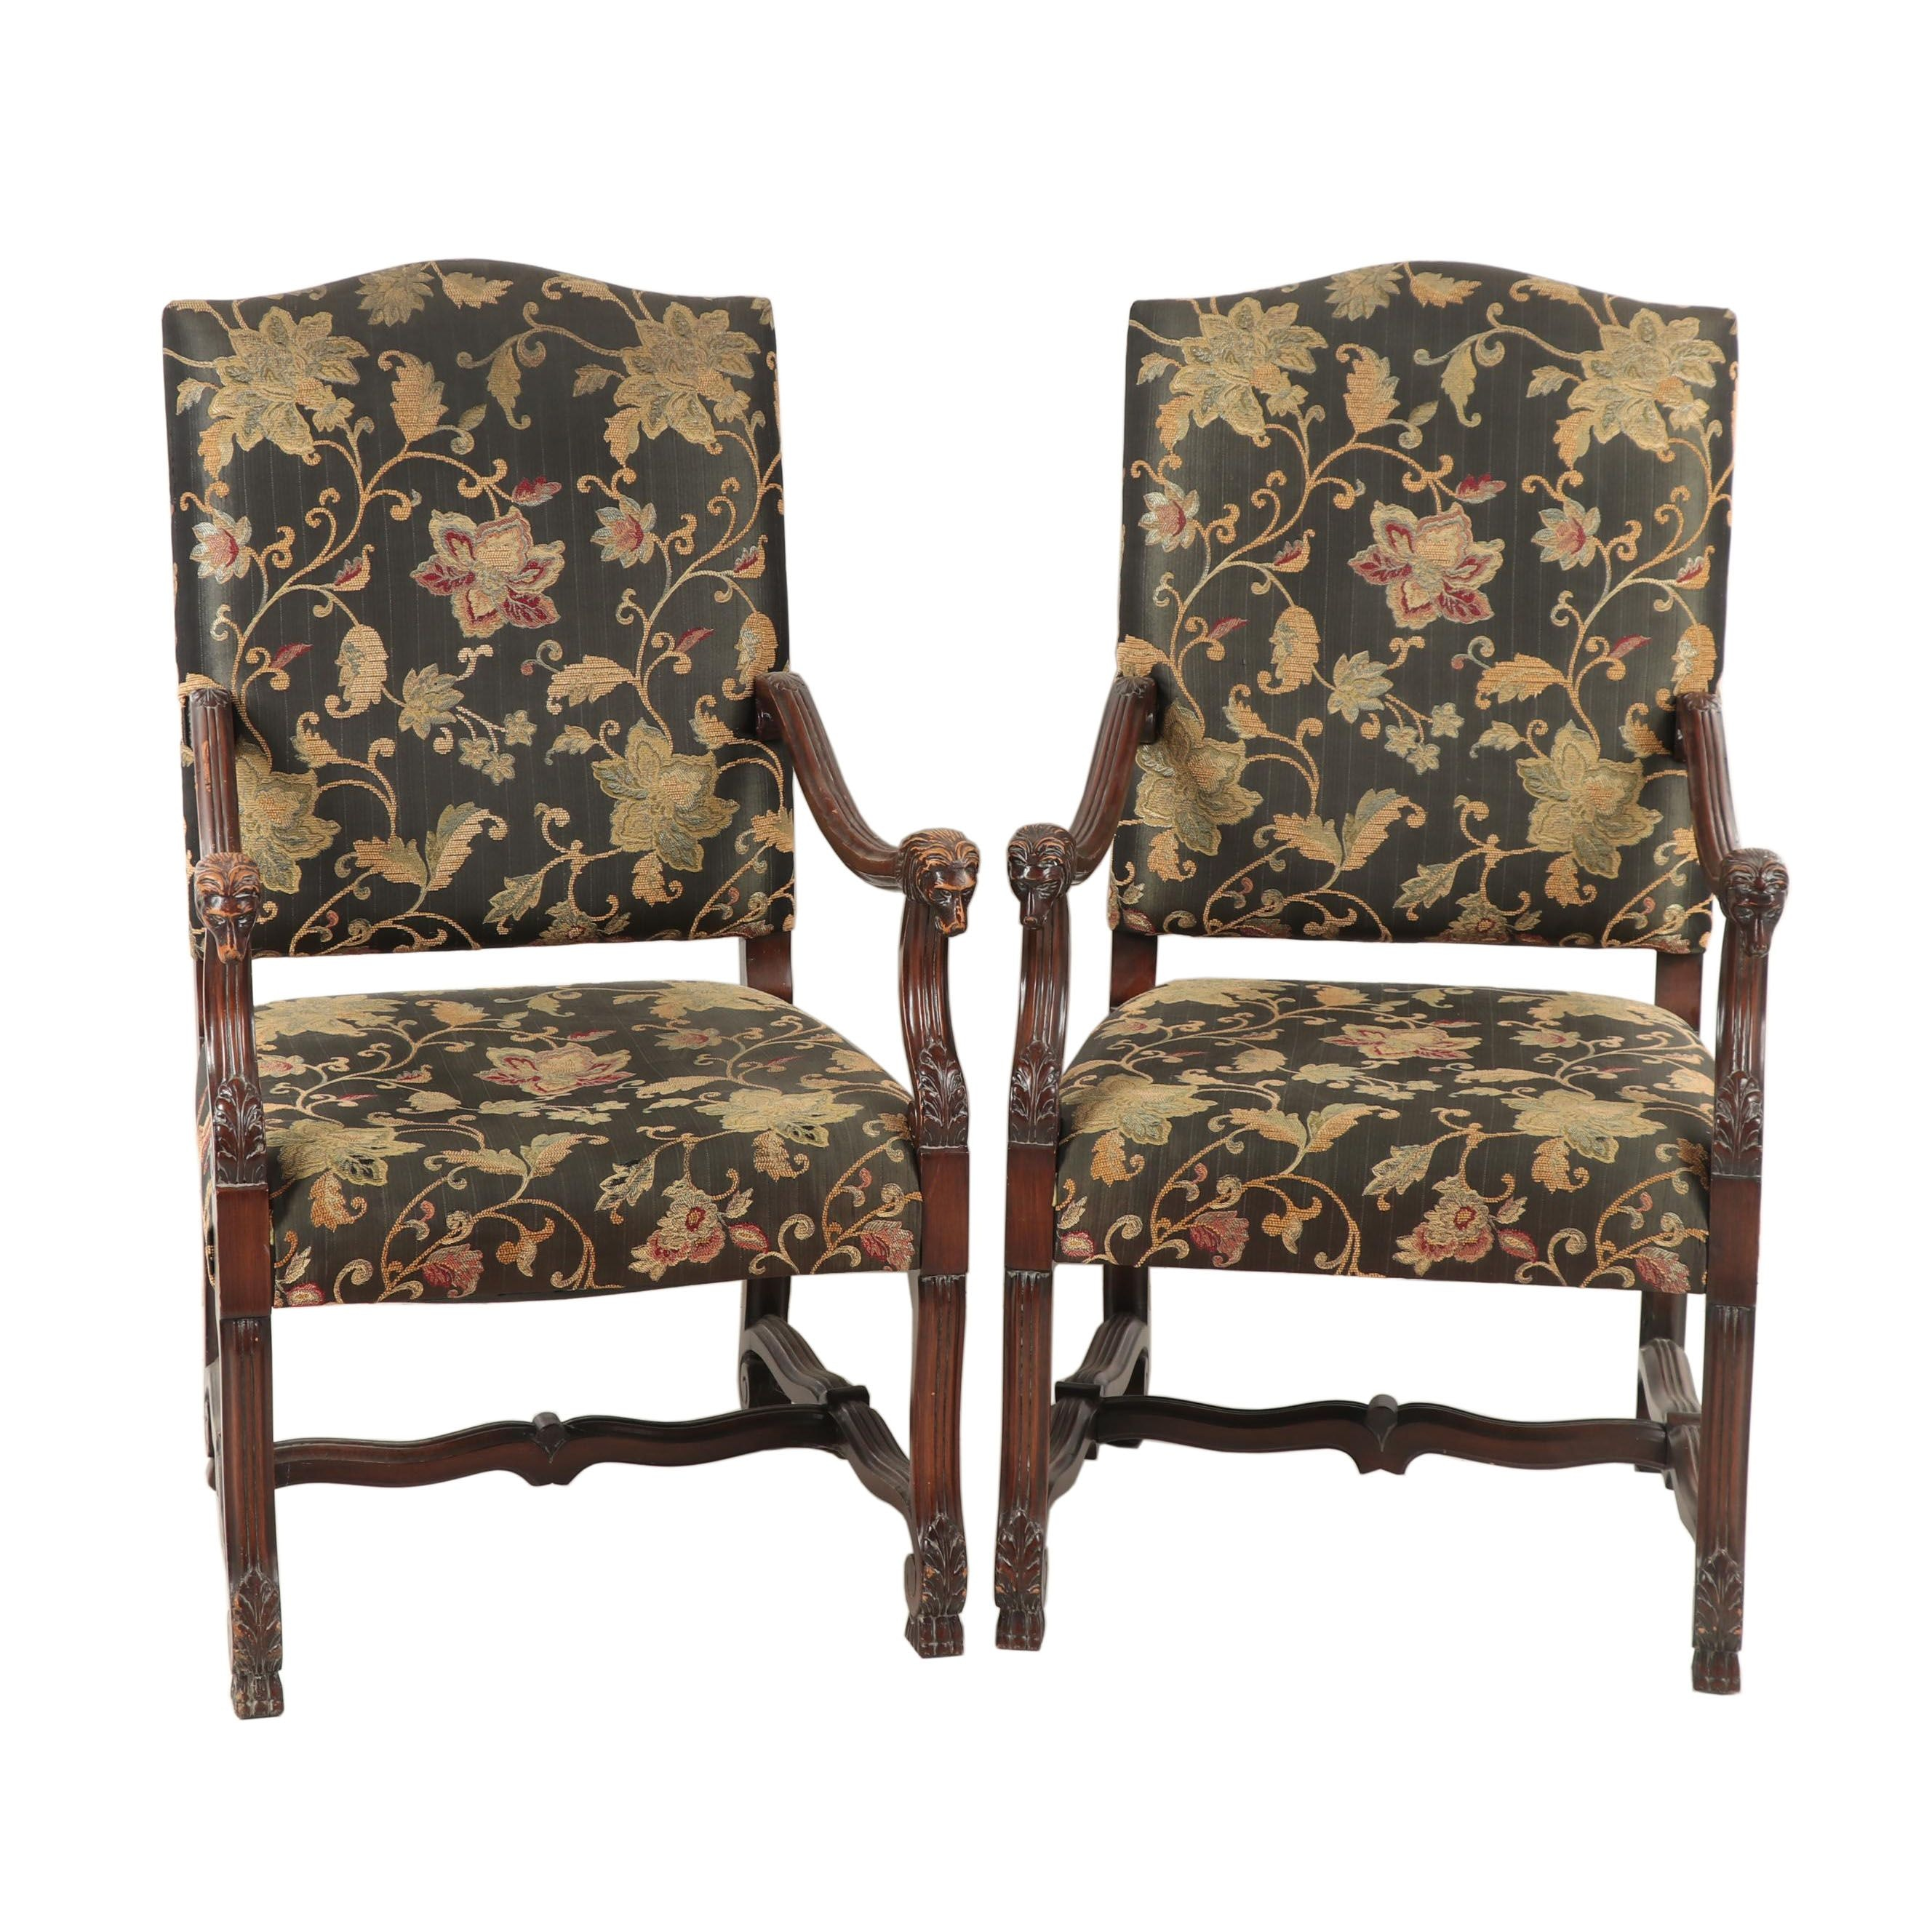 Pair of Baroque Style Wooden Upholstered Armchairs with Carved Lion's Heads